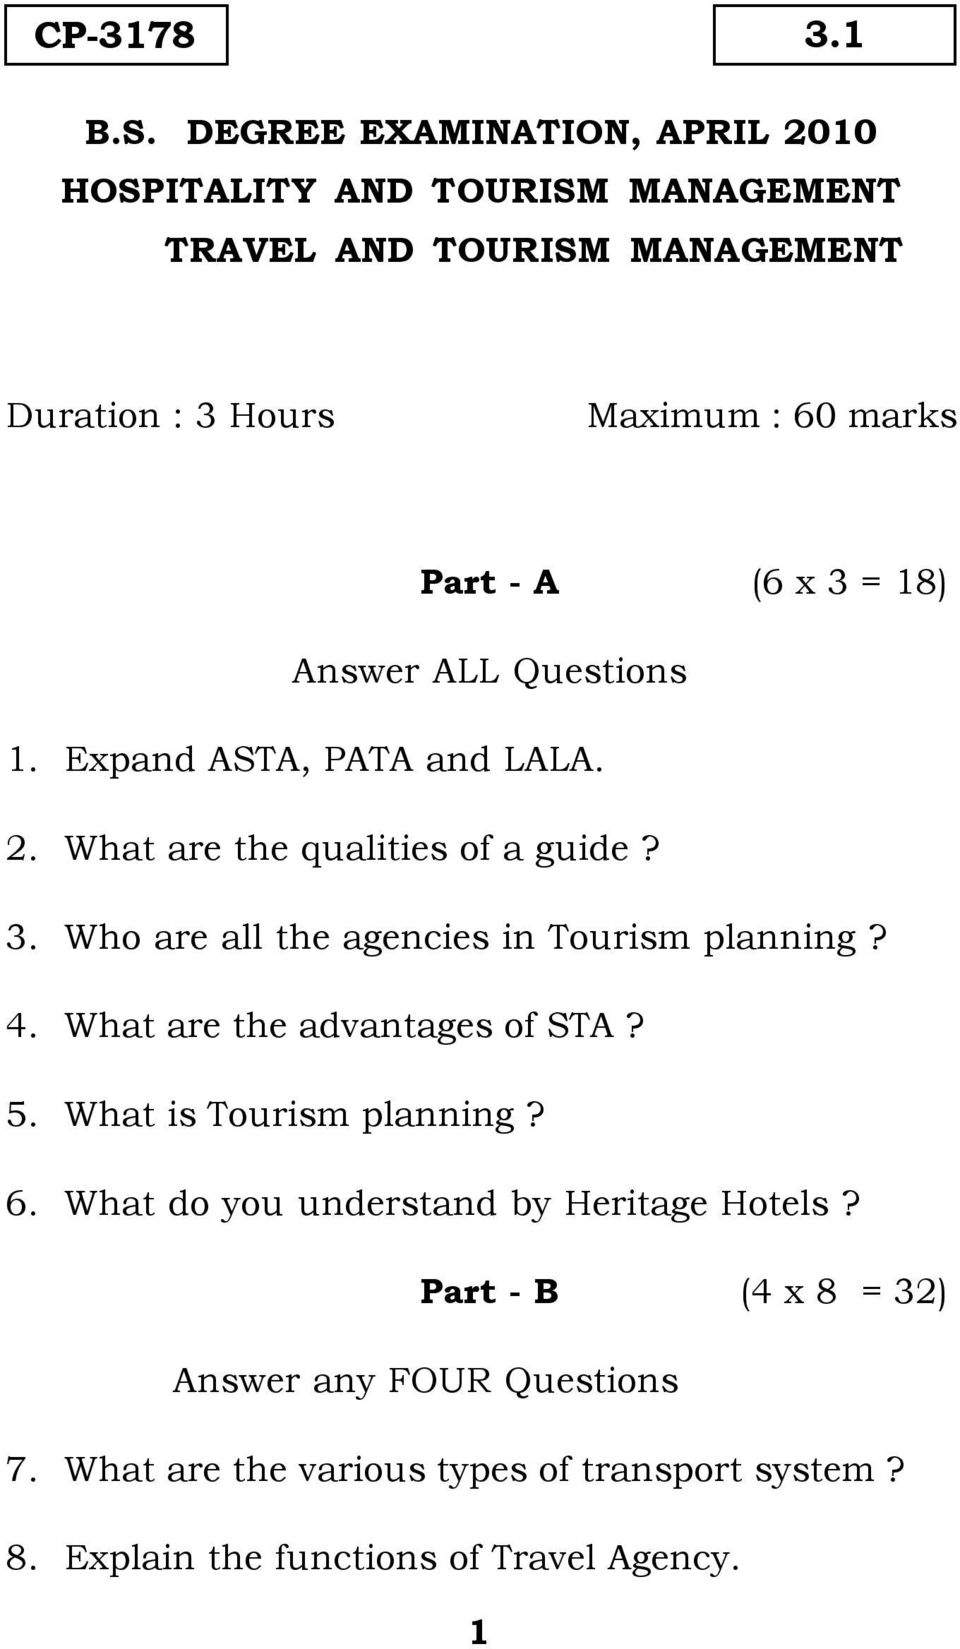 (6 x 3 = 18) Answer ALL Questions 1. Expand ASTA, PATA and LALA. 2. What are the qualities of a guide? 3. Who are all the agencies in Tourism planning?